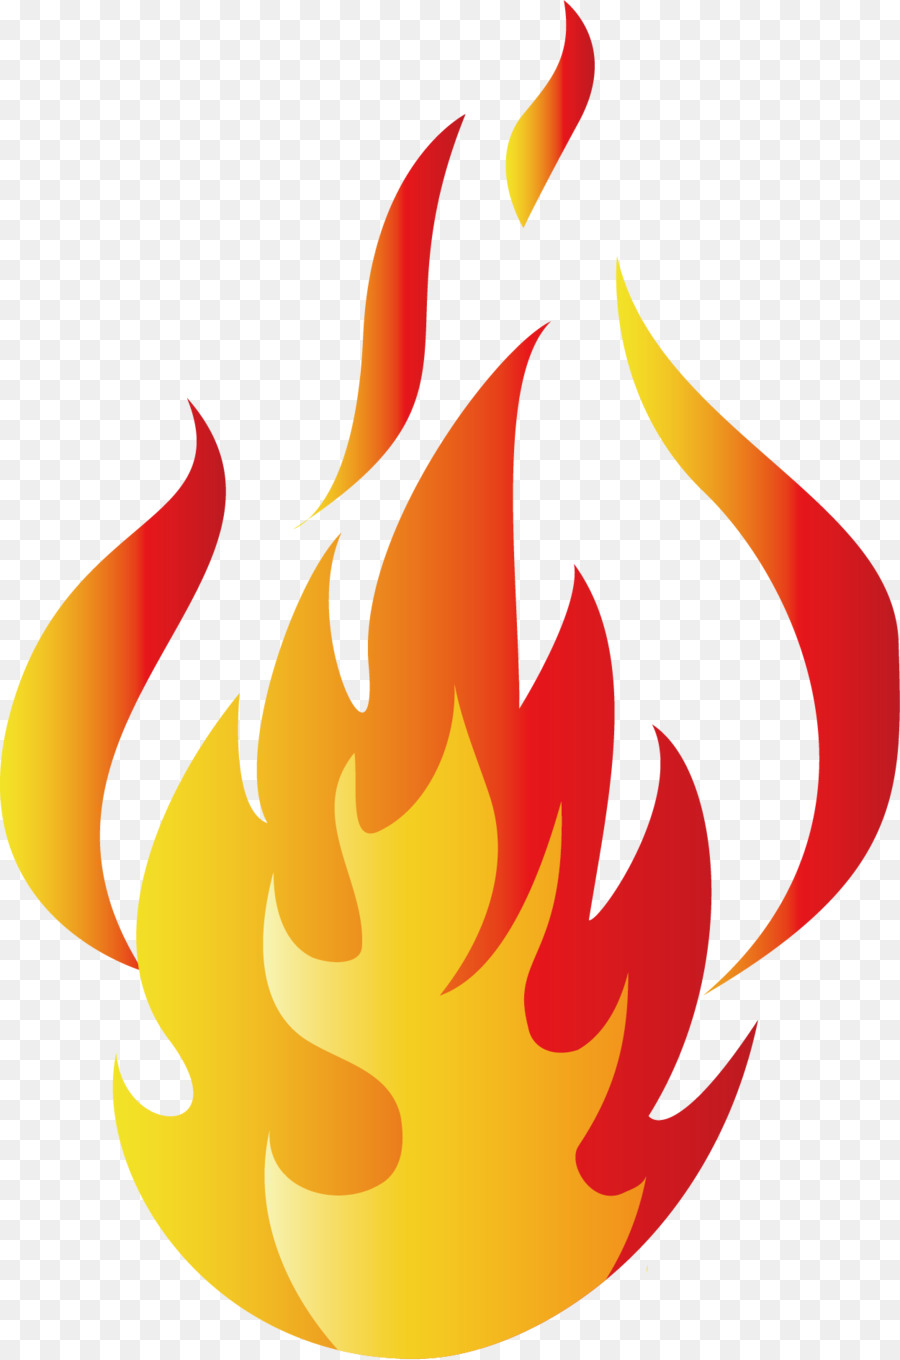 Cool flame cartoon flame cartoon png download 1250 1887 free transparent leaf png download - Dessiner le feu ...